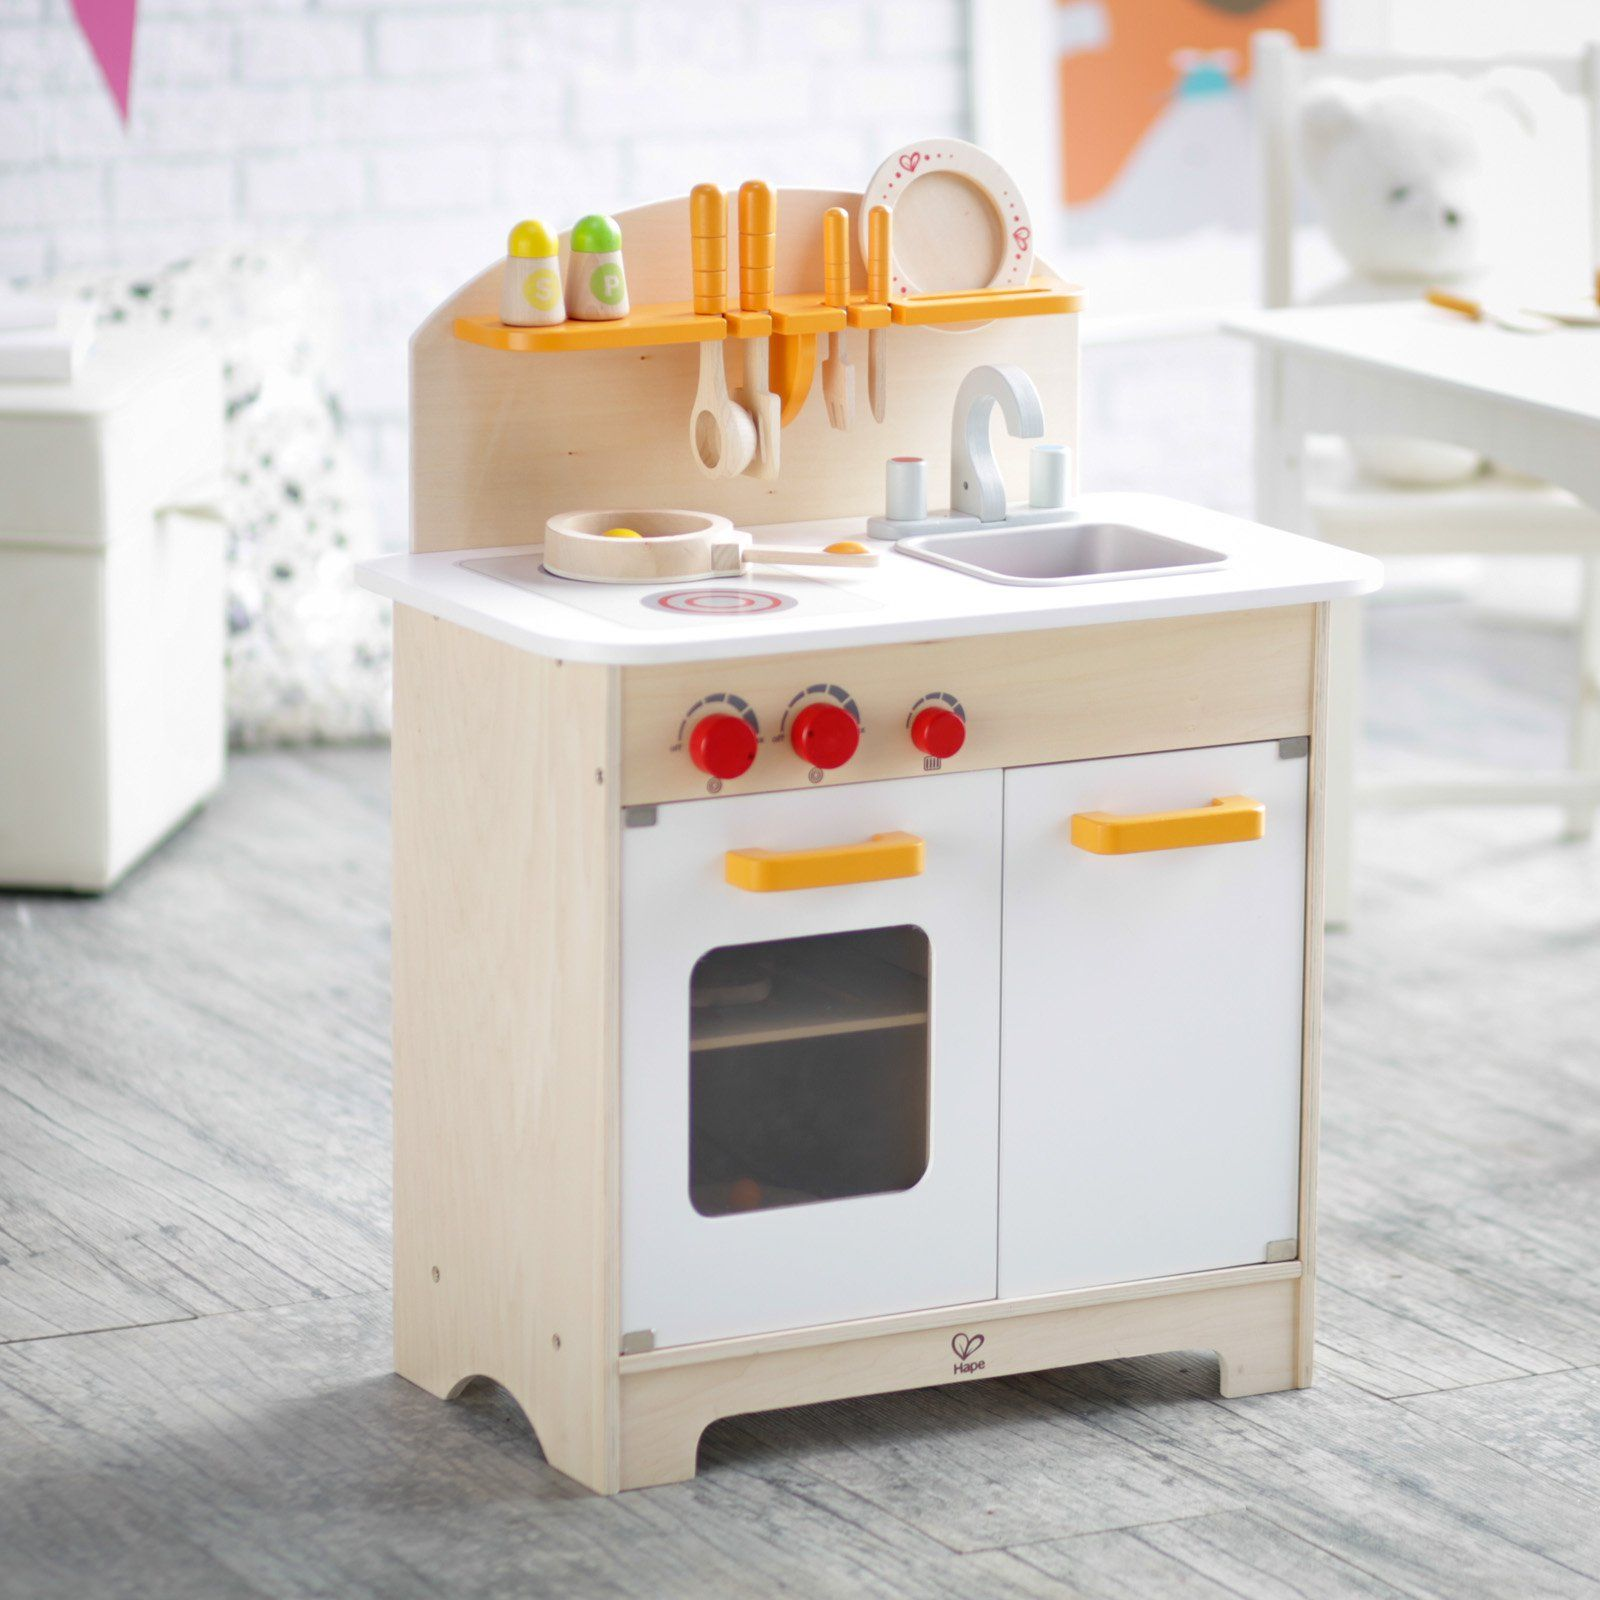 Hape White Gourmet Chef Kitchen with Accessories - The White Gourmet ...